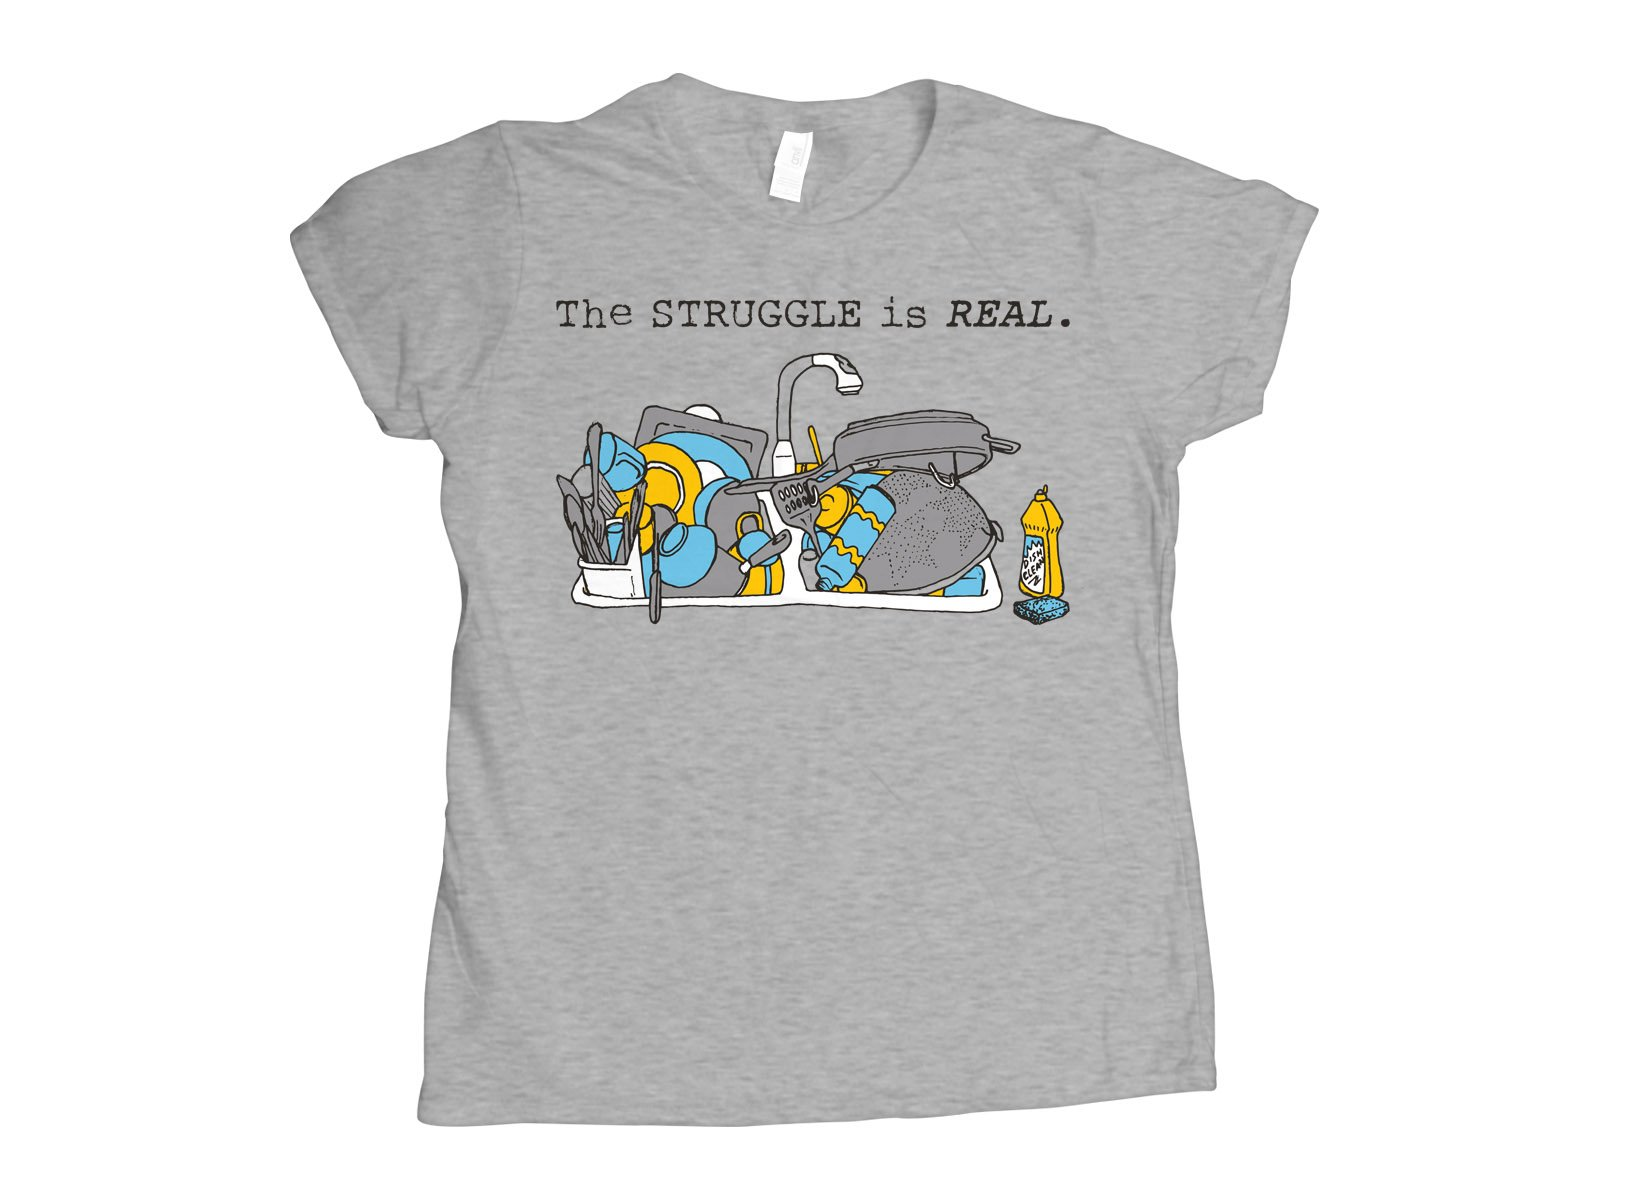 The Struggle Is Real on Womens T-Shirt